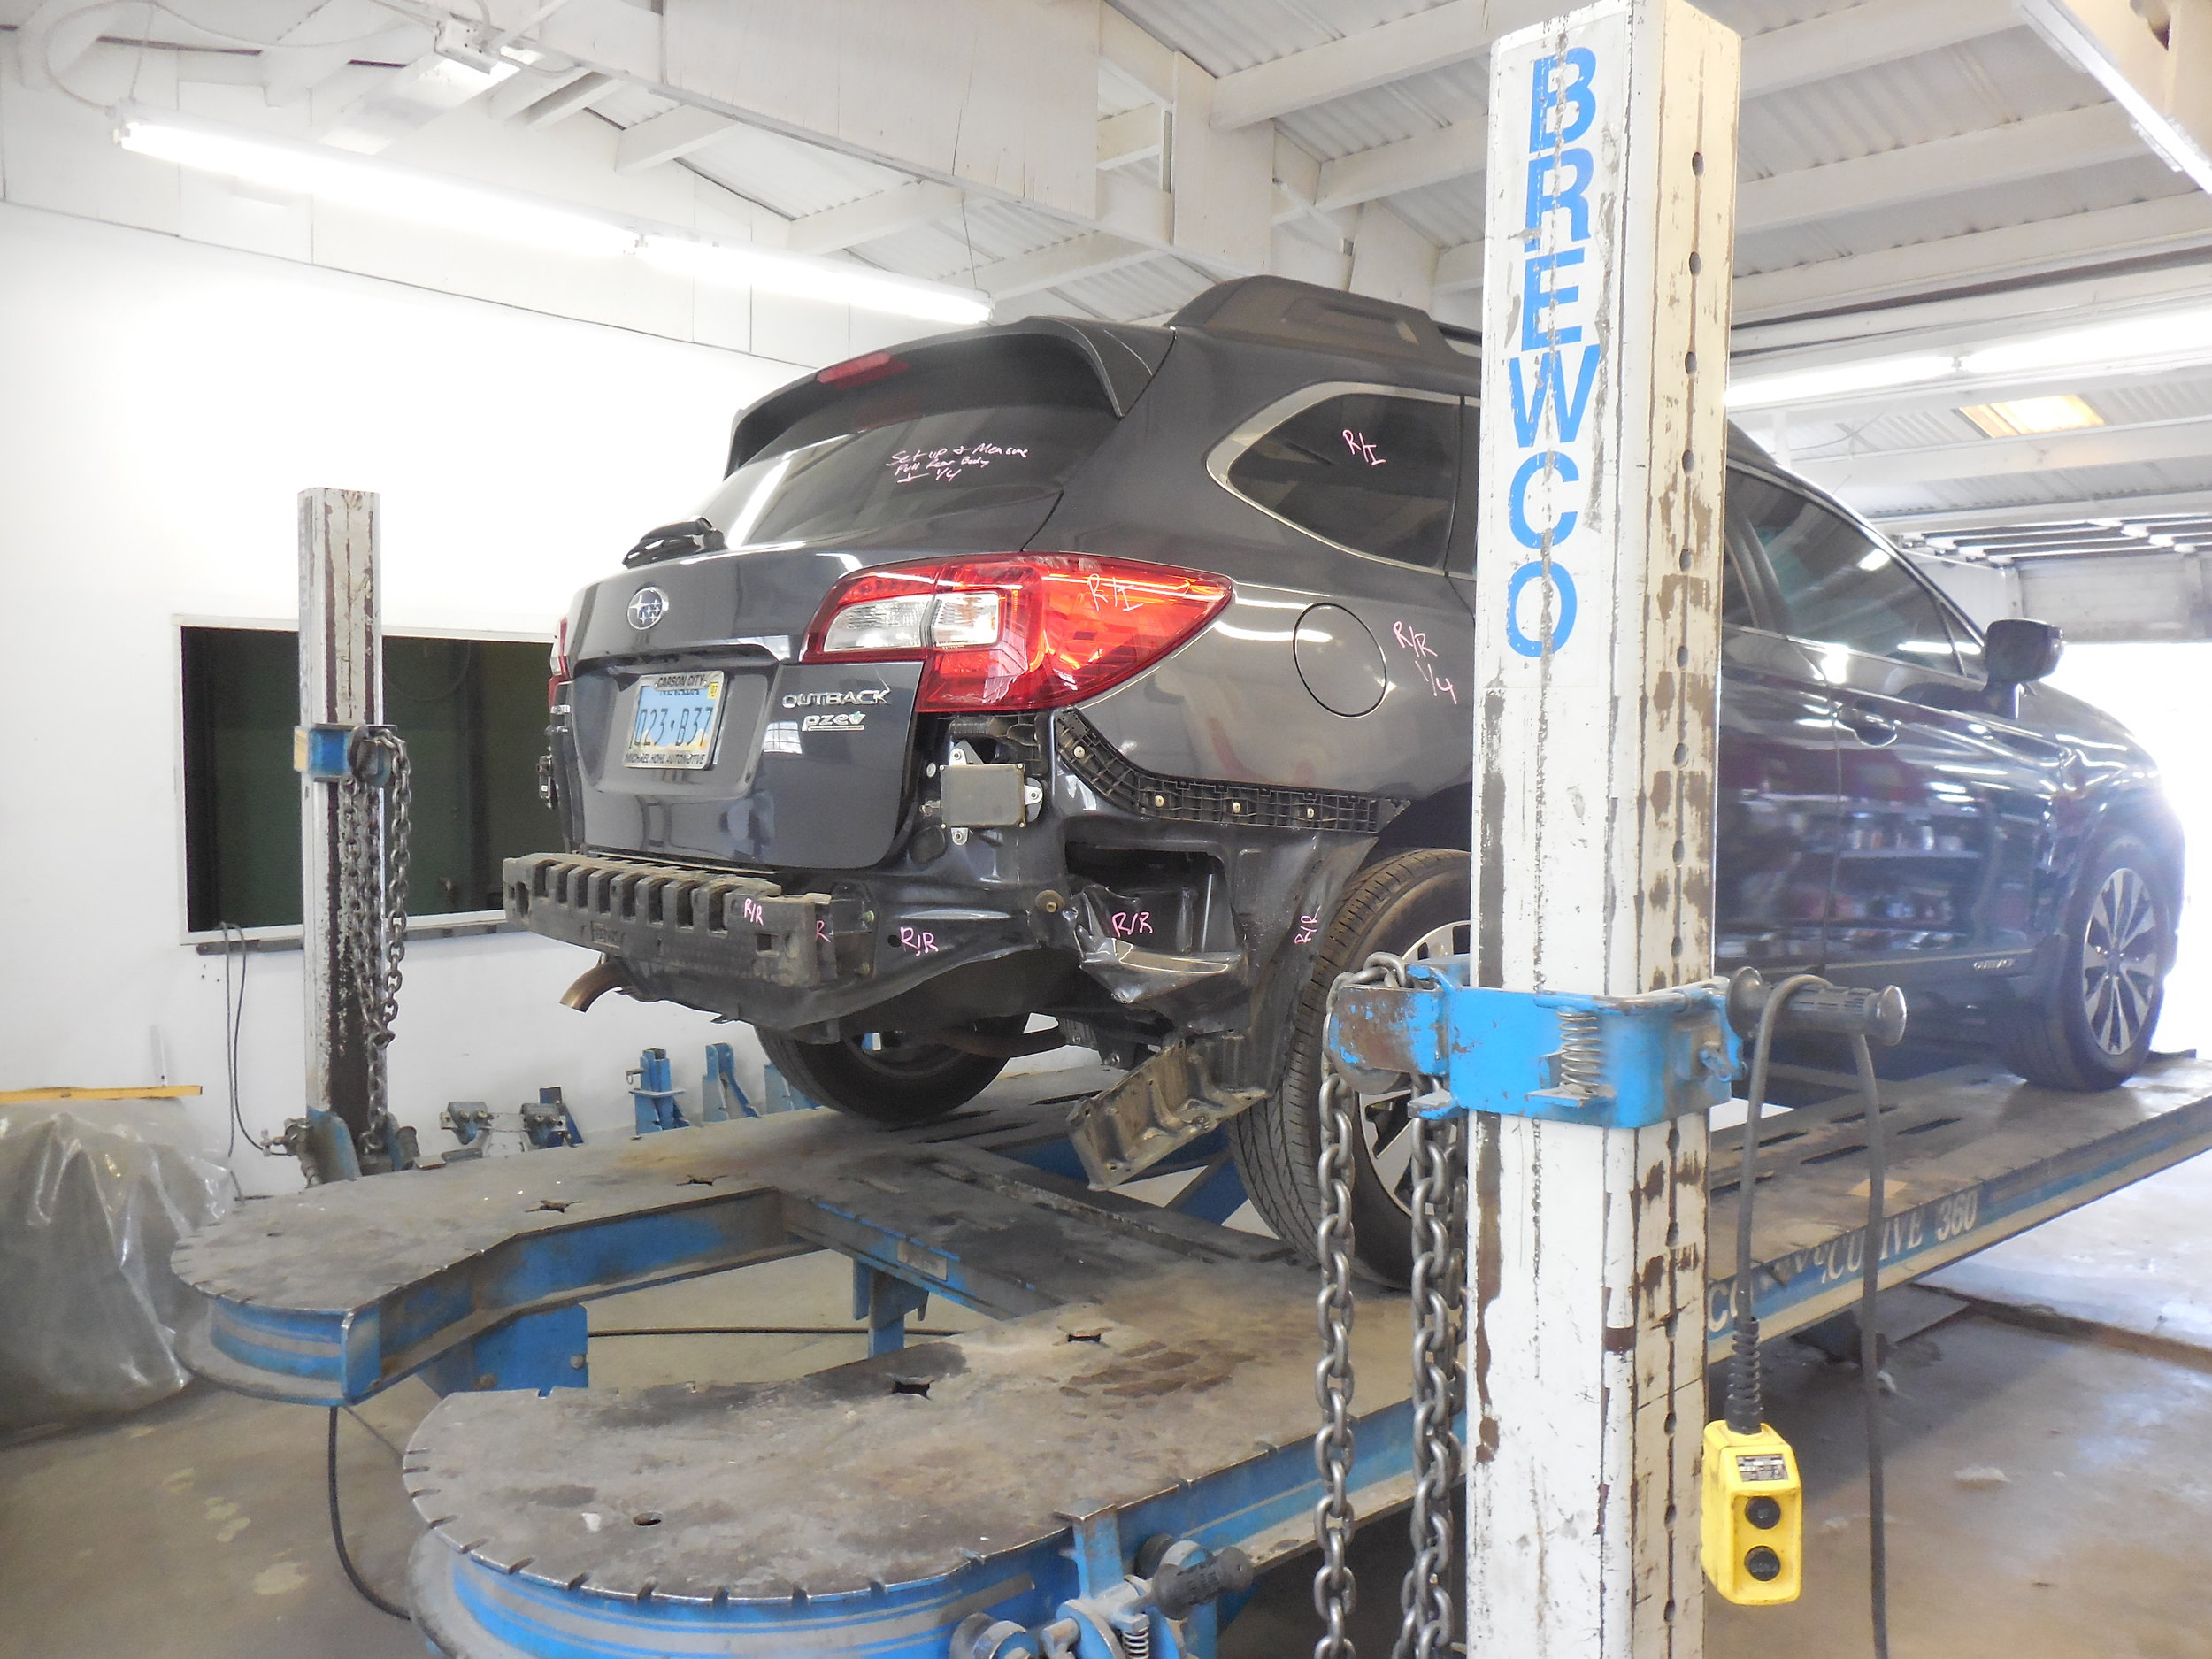 Subaru Outback Rear Bumper Repair Free Estimate Damage Diagnosis